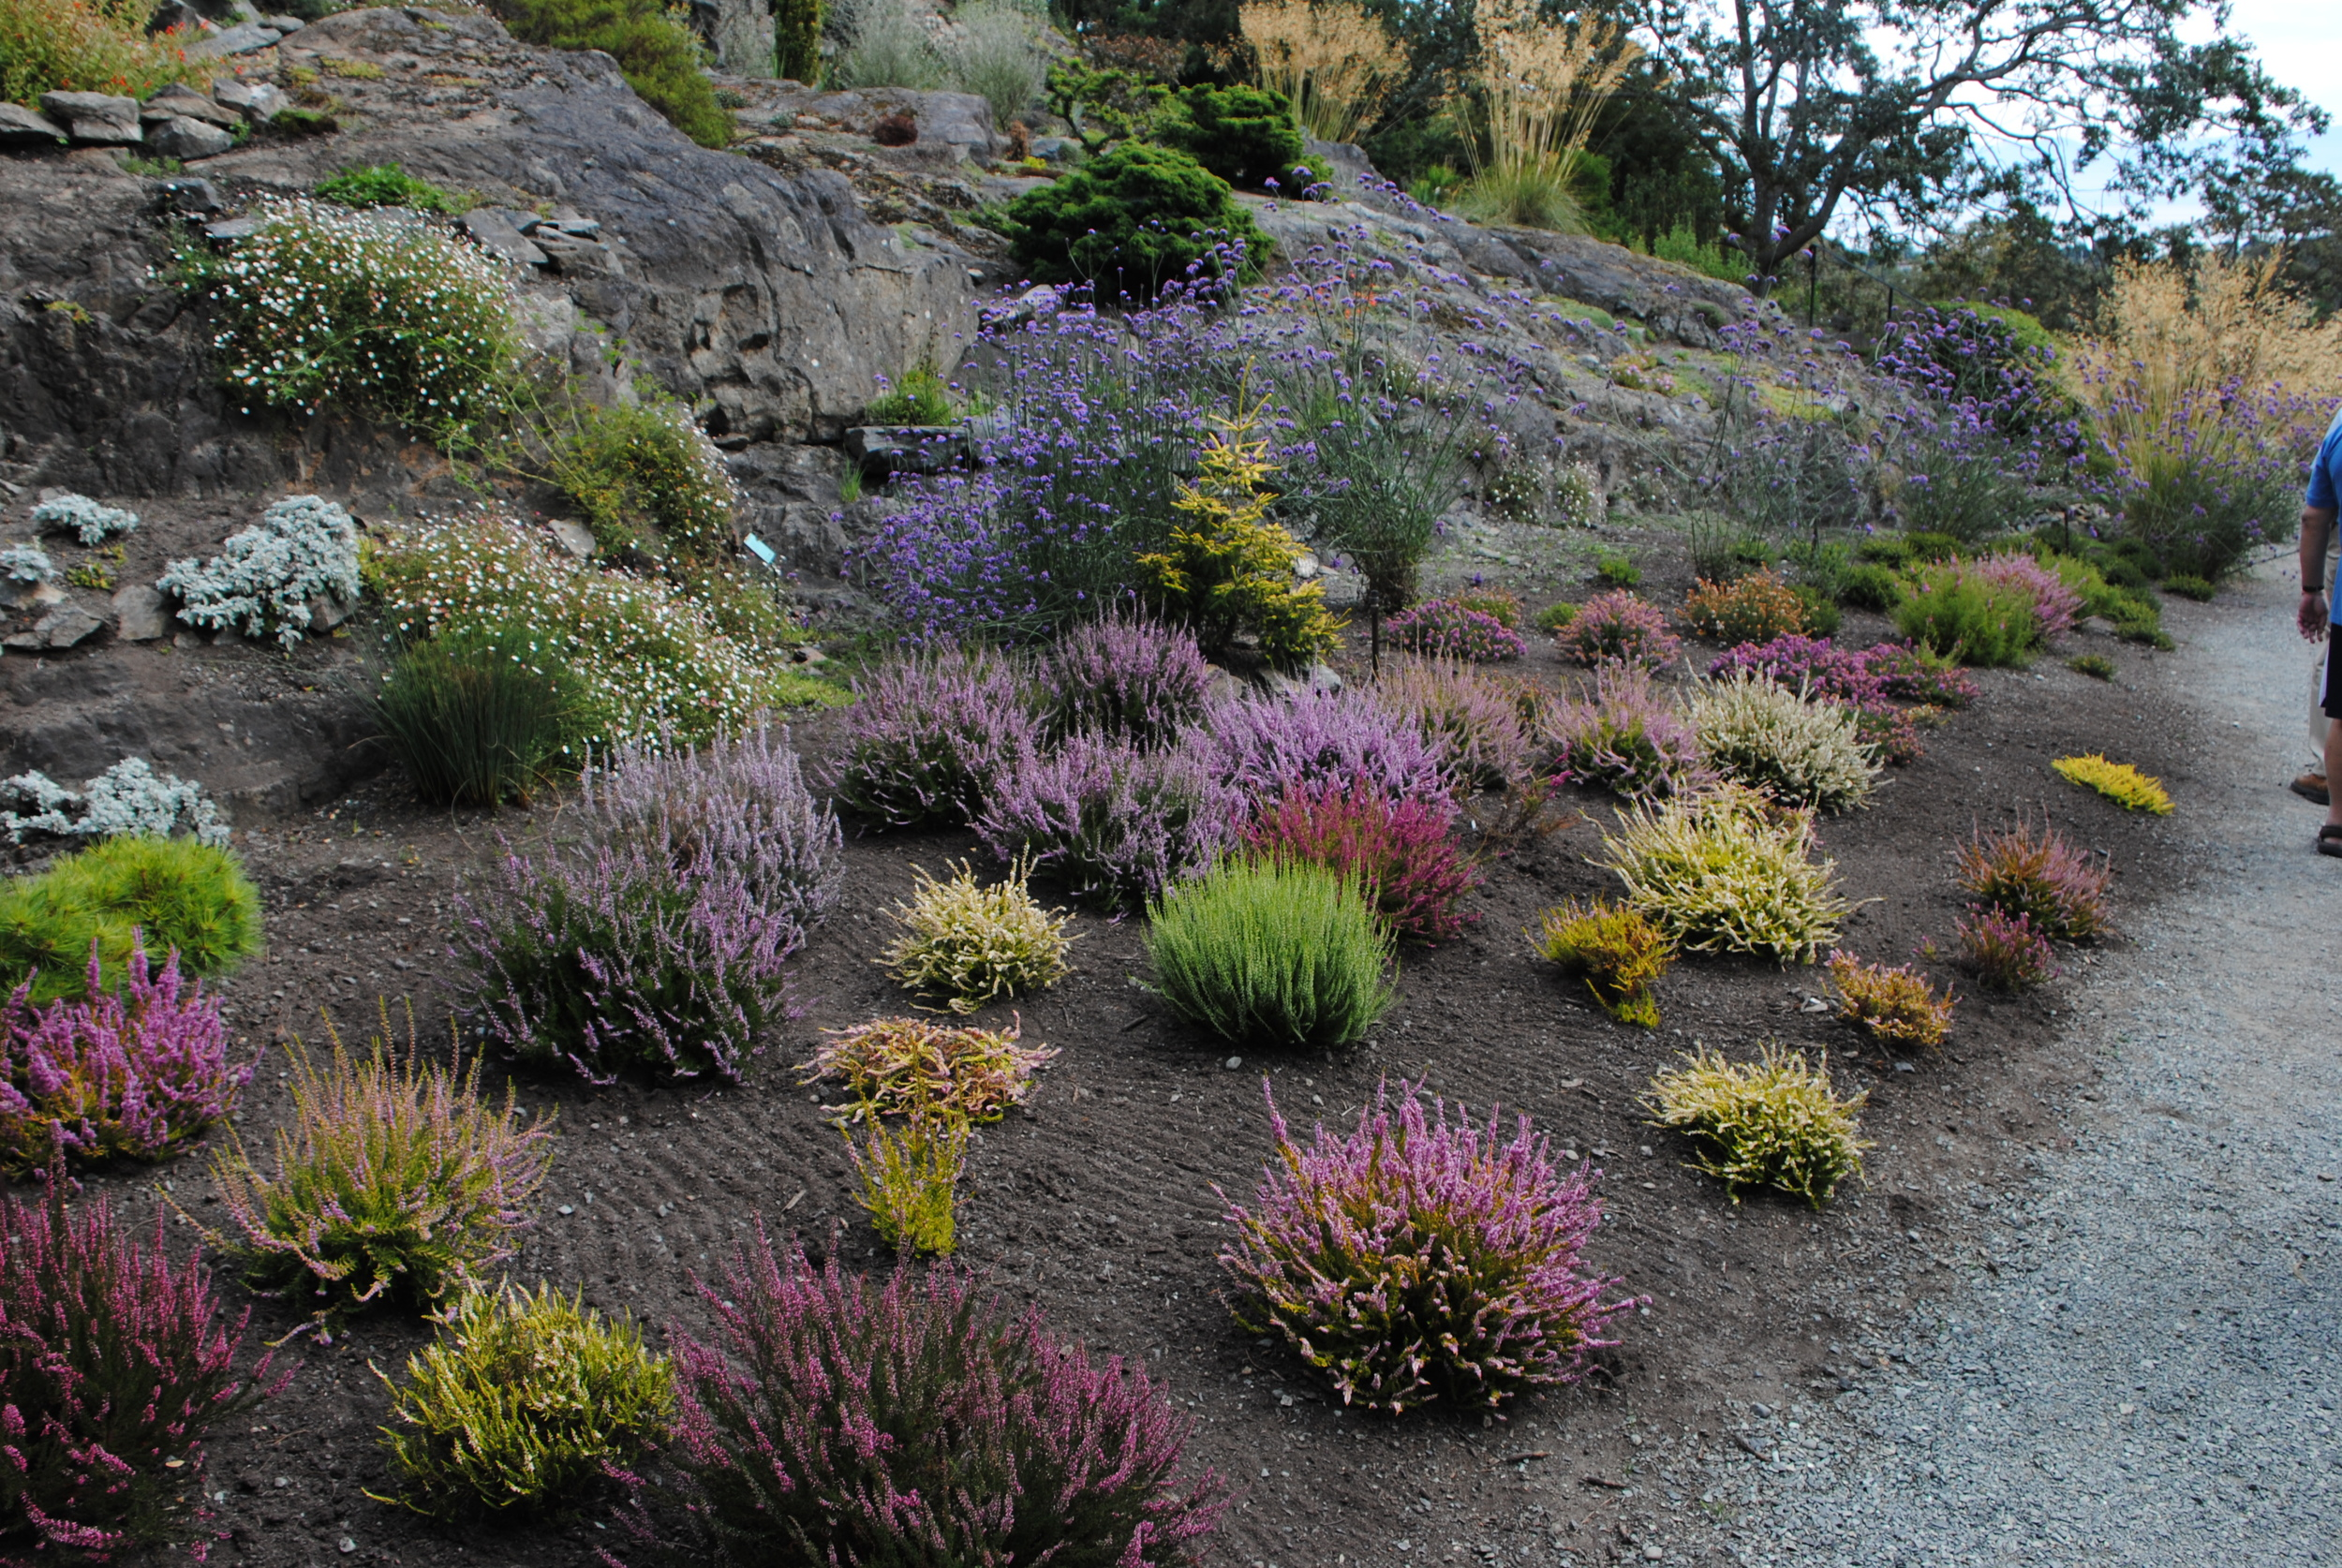 A newly planted heath garden below the rock garden.